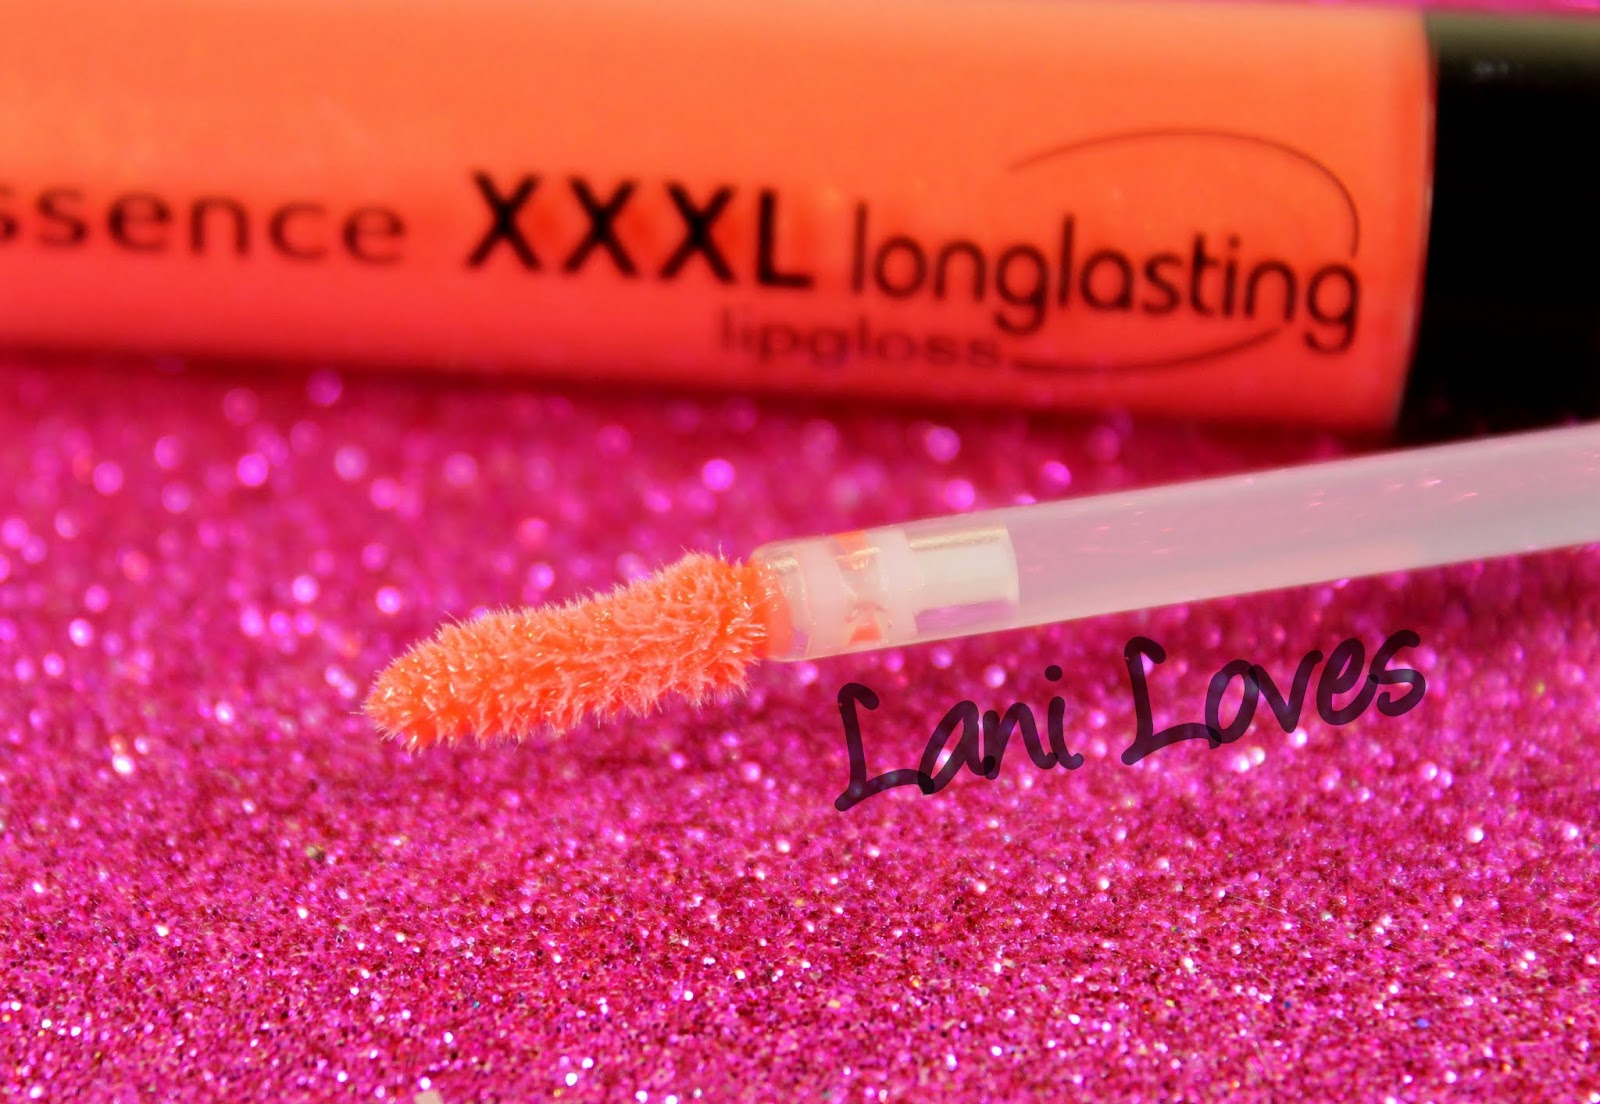 Essence XXXL Longlasting Lipgloss #02 Coral Delight Swatches & Review